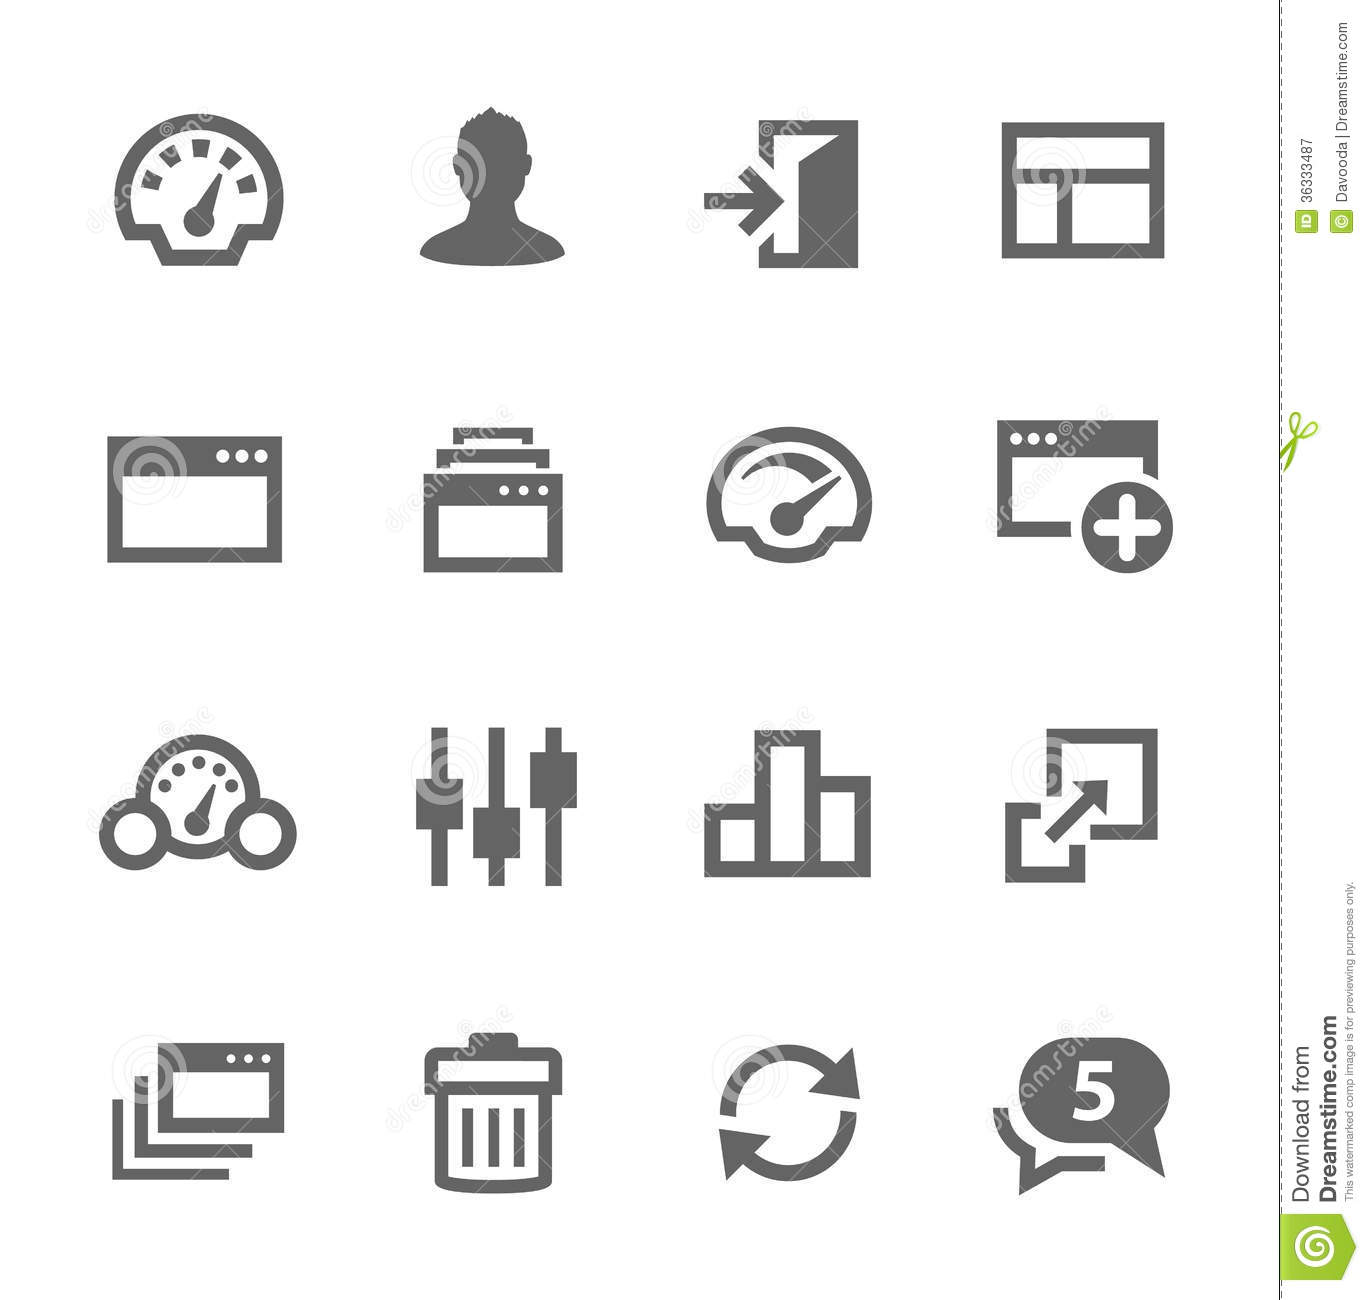 Dashboard Icons Set Royalty Free Stock Photography